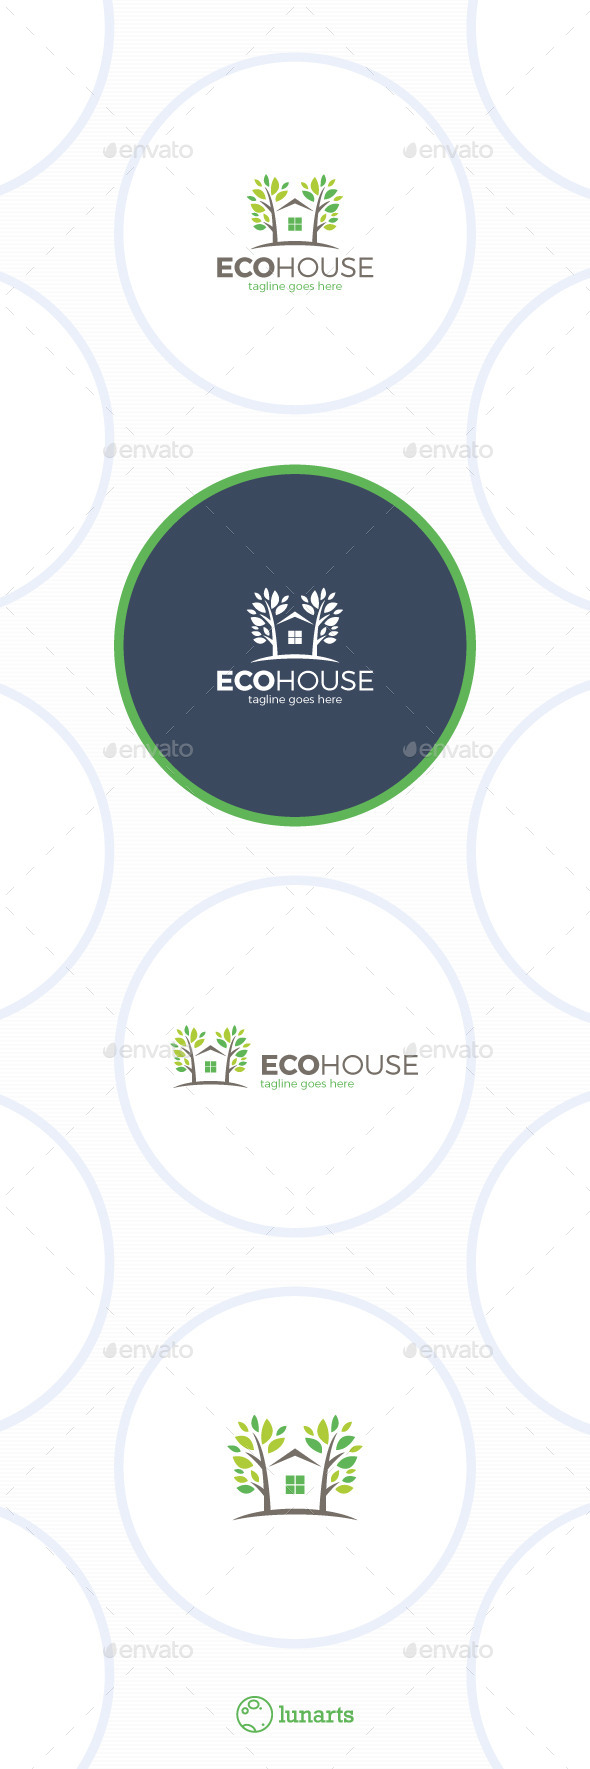 Eco House Logo - Tree Home - Nature Logo Templates